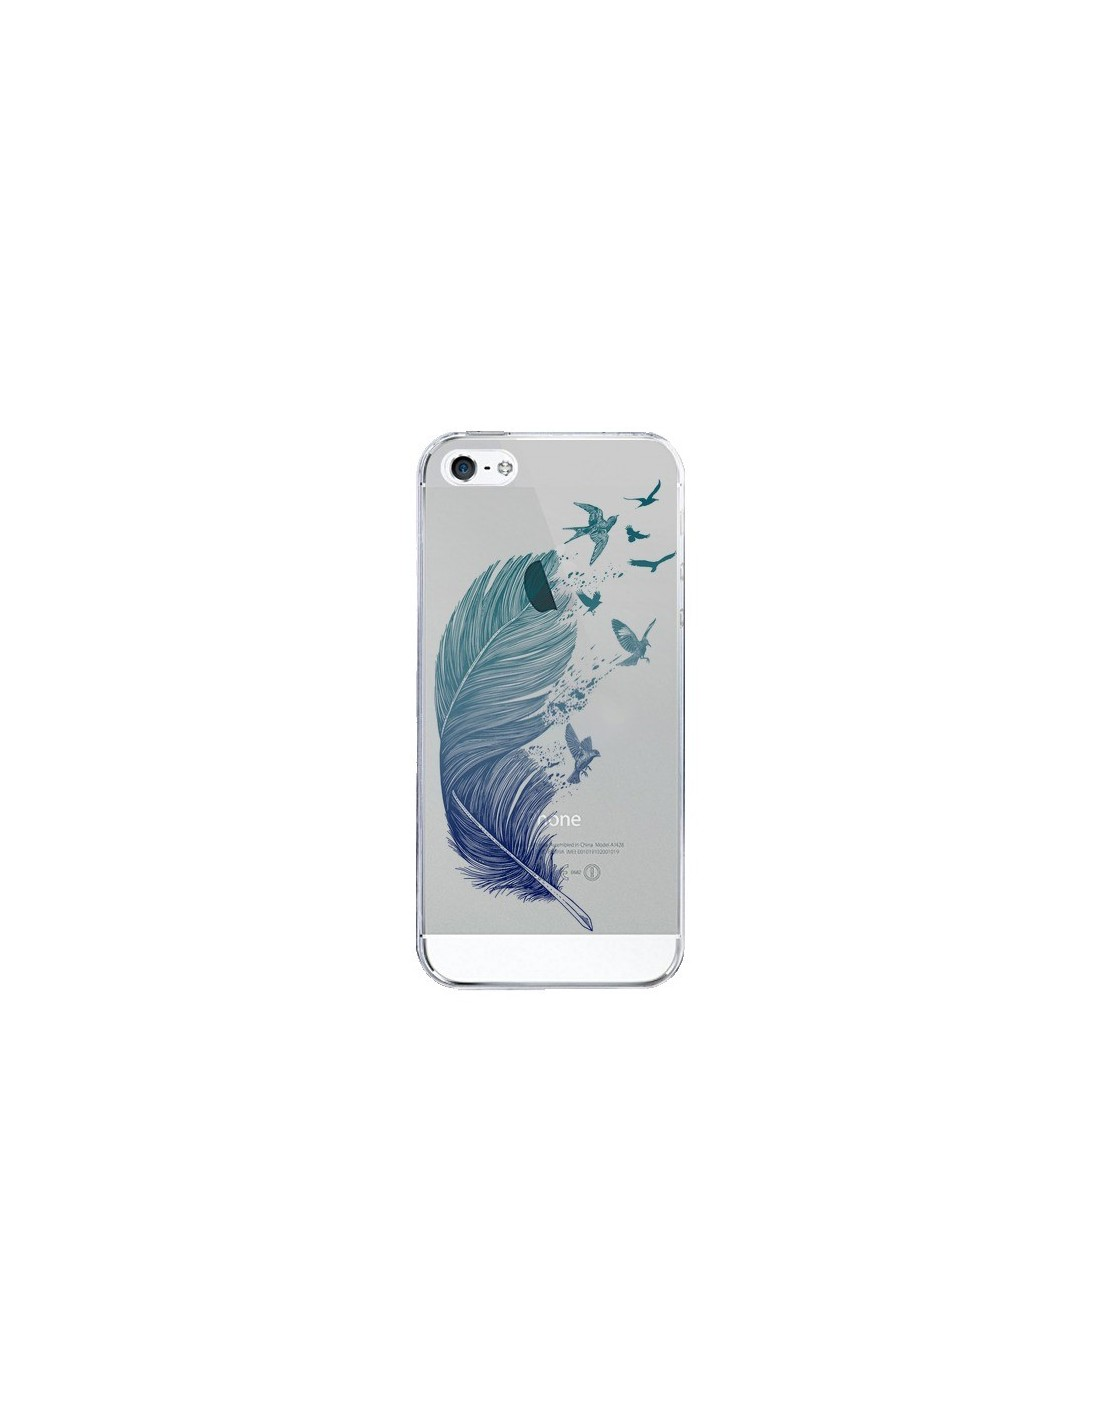 coque plume feather fly away transparente pour iphone 5 5s et se rachel caldwell. Black Bedroom Furniture Sets. Home Design Ideas